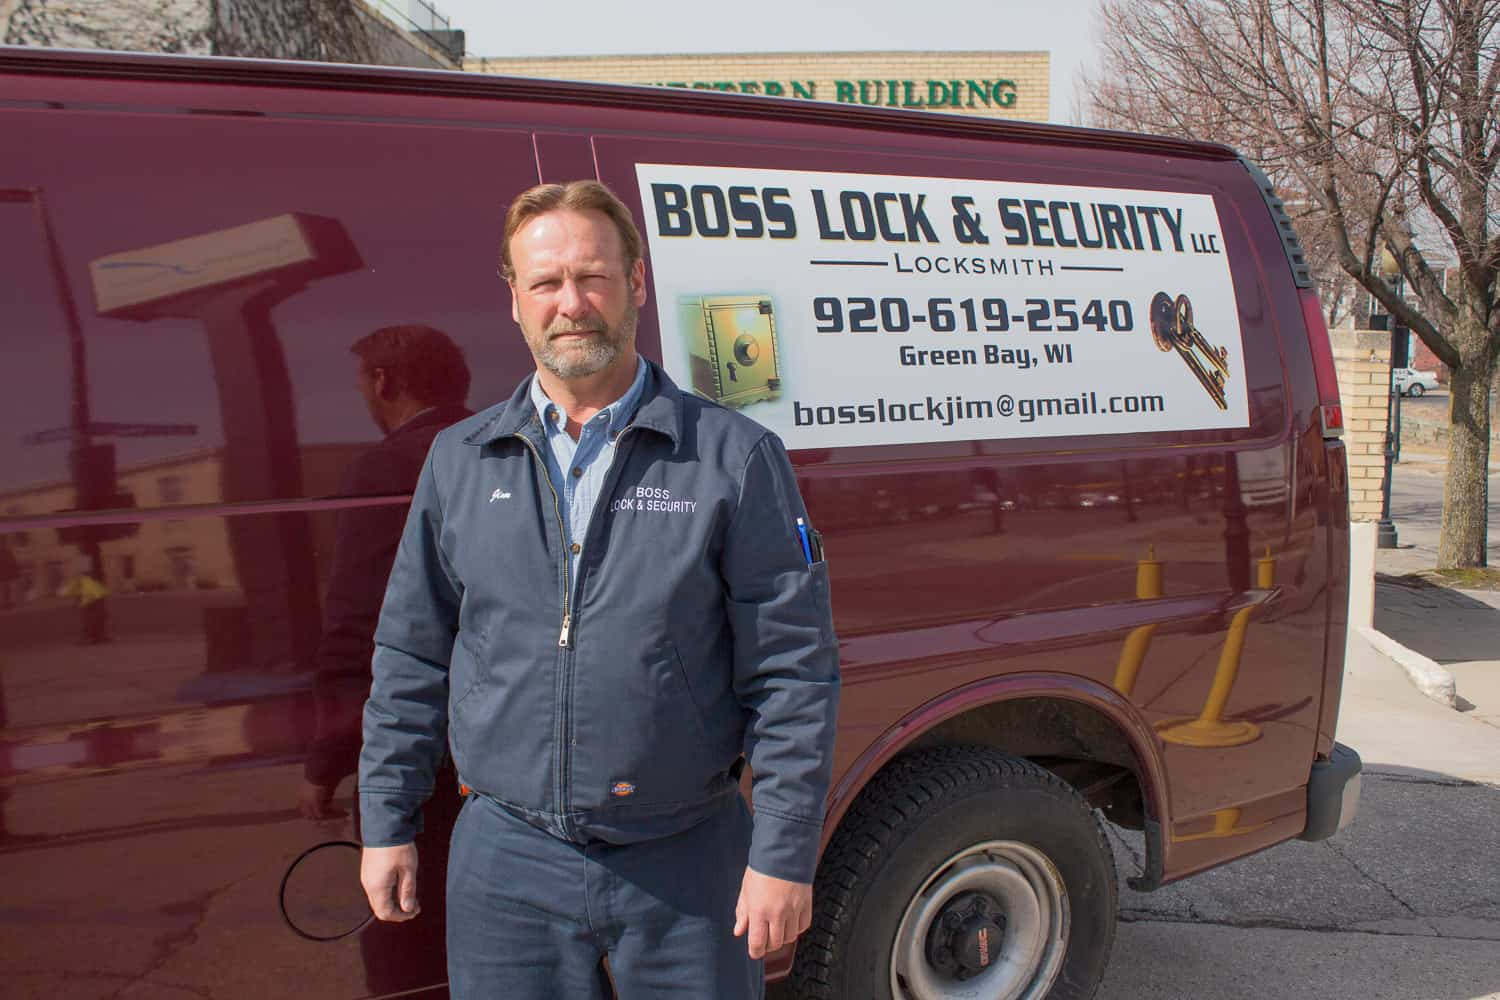 As a Locksmith in Green Bay, Boss Lock & Security Assures Safety